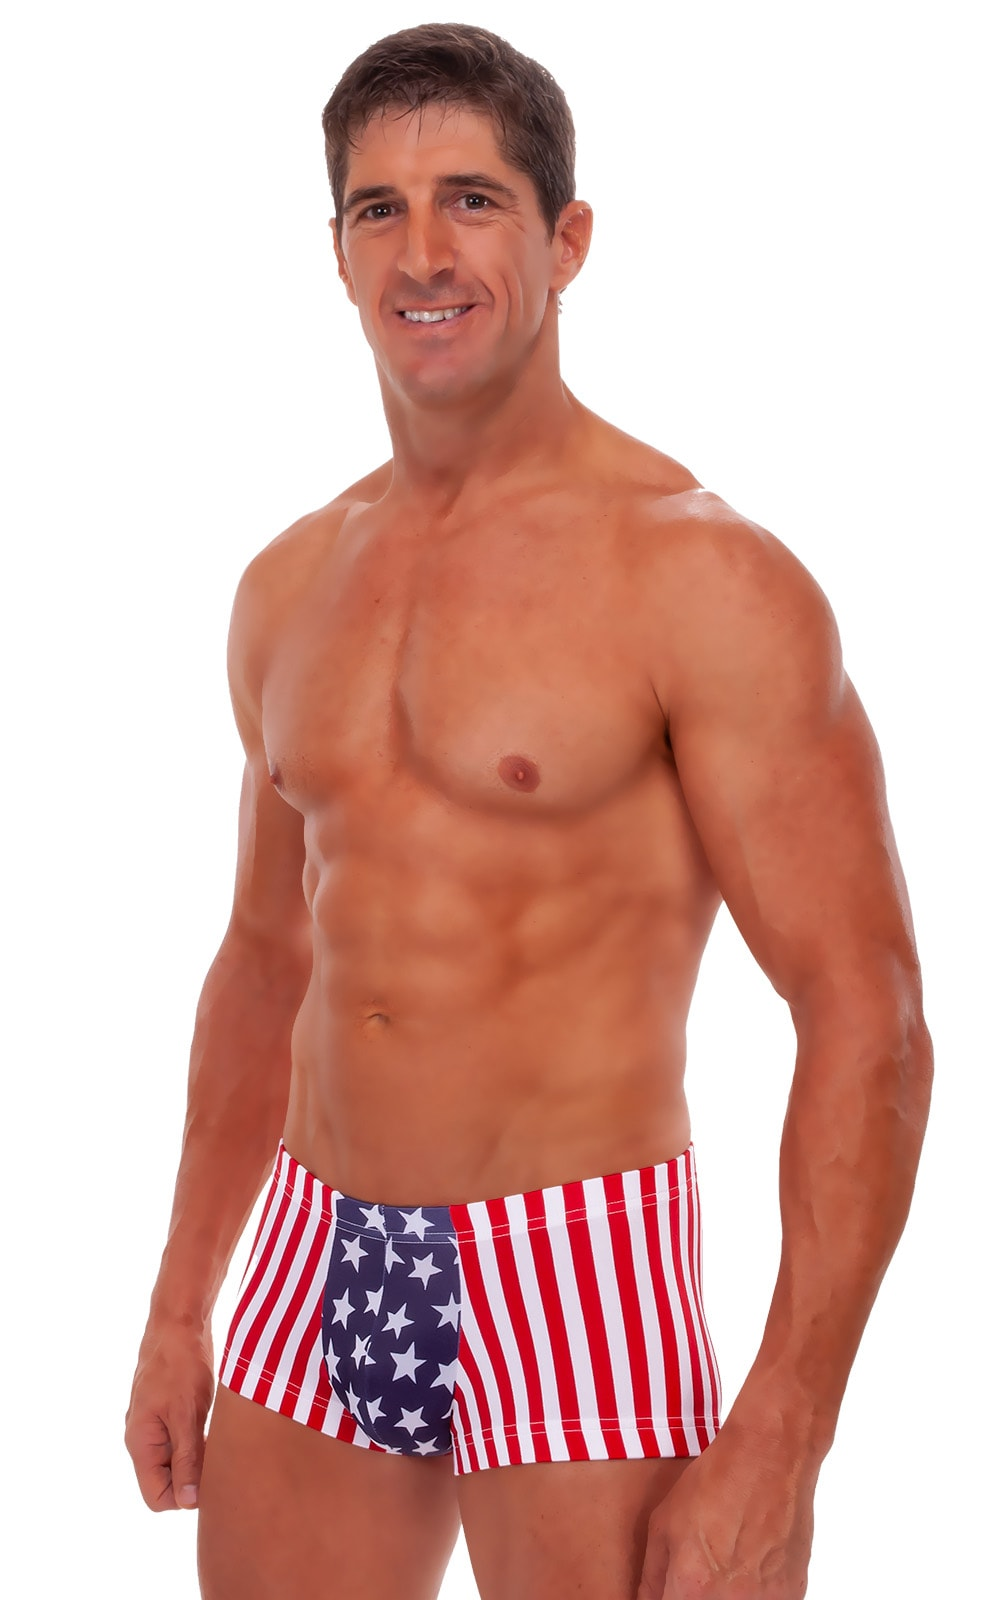 Square Cut - Fitted - Watersports Swim Trunks in Stars and Stripes 1